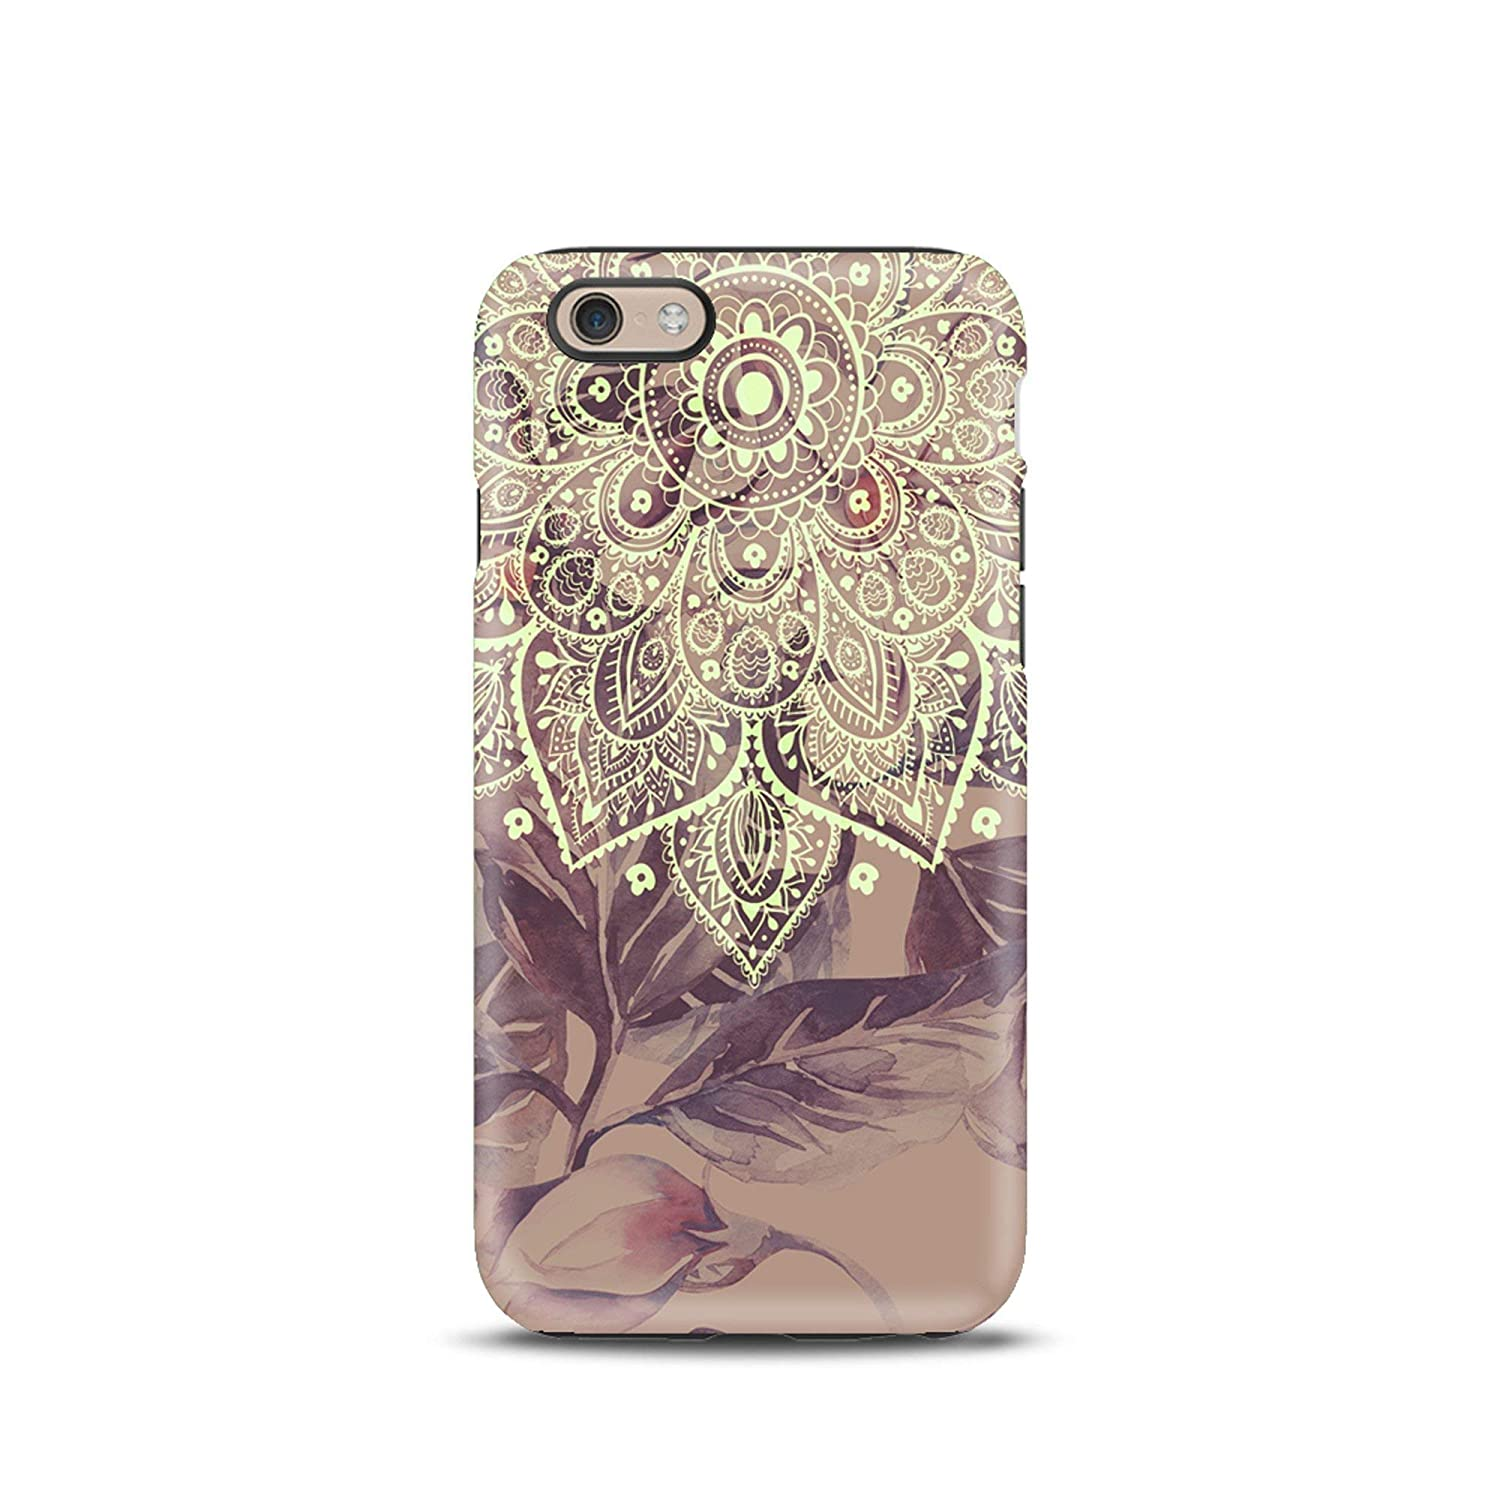 Mandala Floral Boho cover case TPU Tough for iPhone 5, 5s, 6, 6s, 7, 7 plus, 8, 8 plus, X, XS, for Galaxy S6, S7, S8